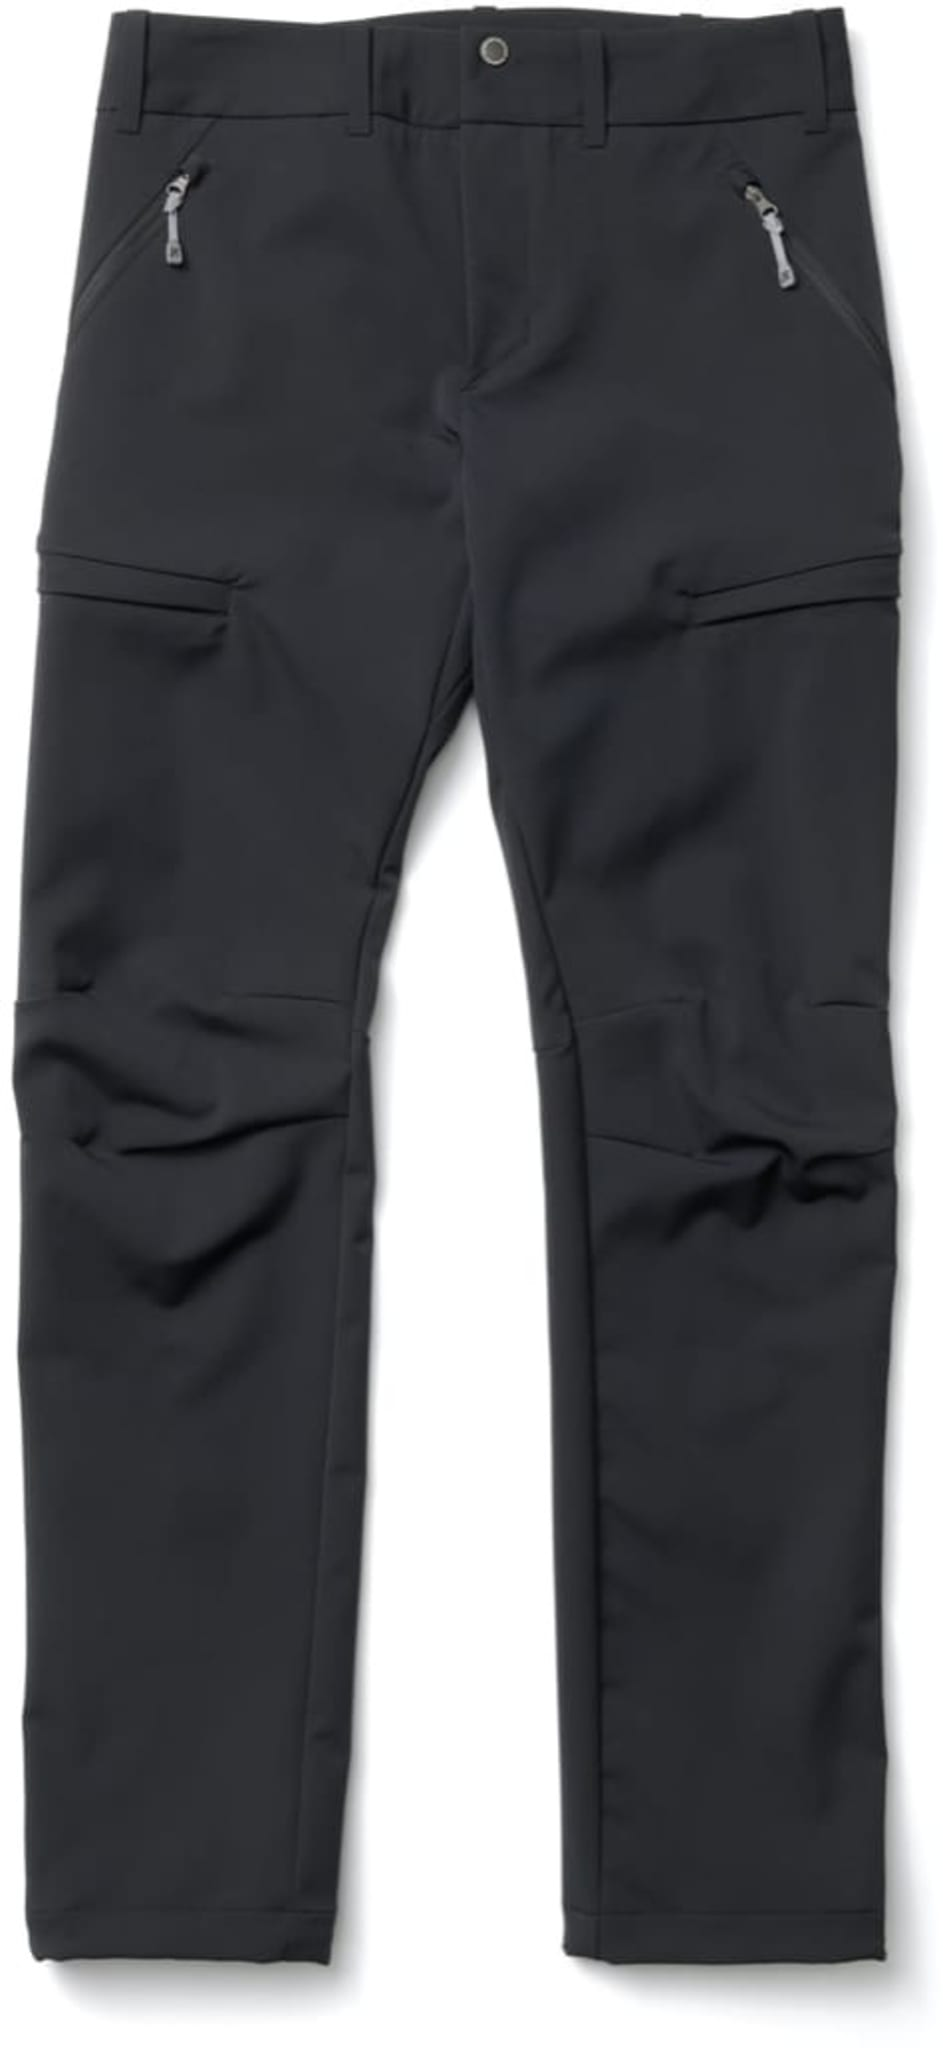 Motion Top Pants Ws